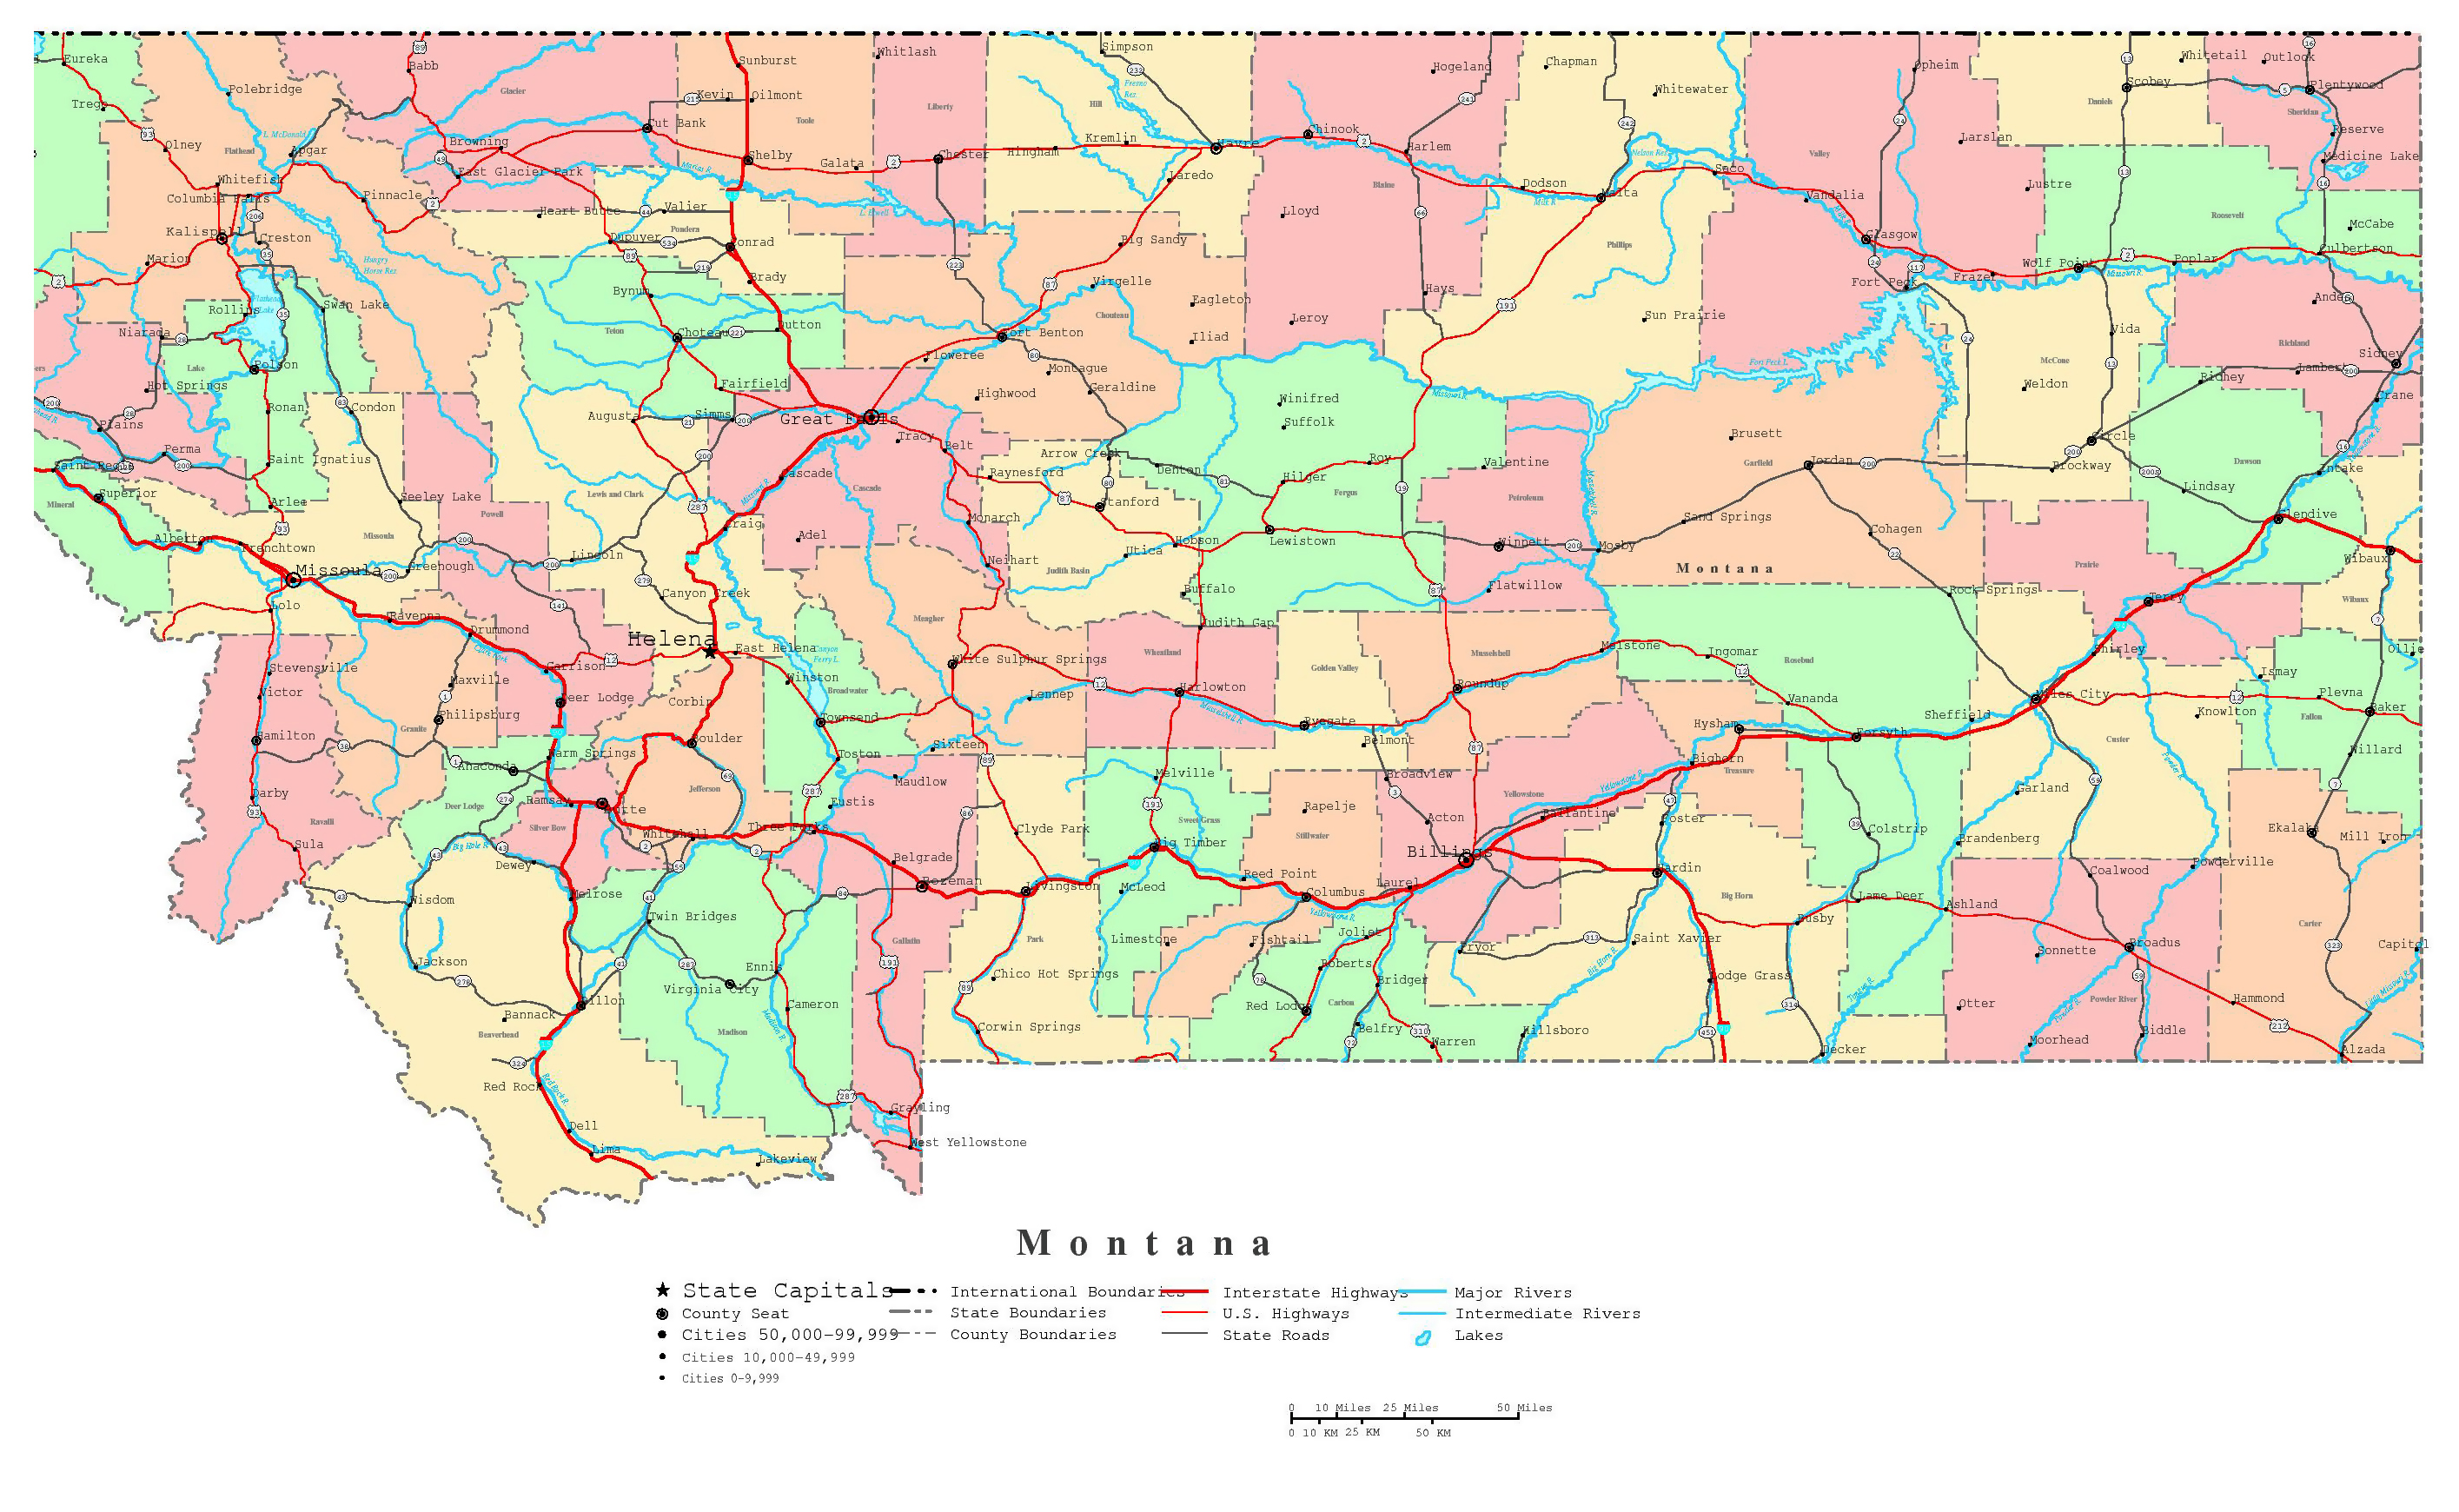 Large Detailed Administrative Map Of Montana State With Roads - Montana state usa map